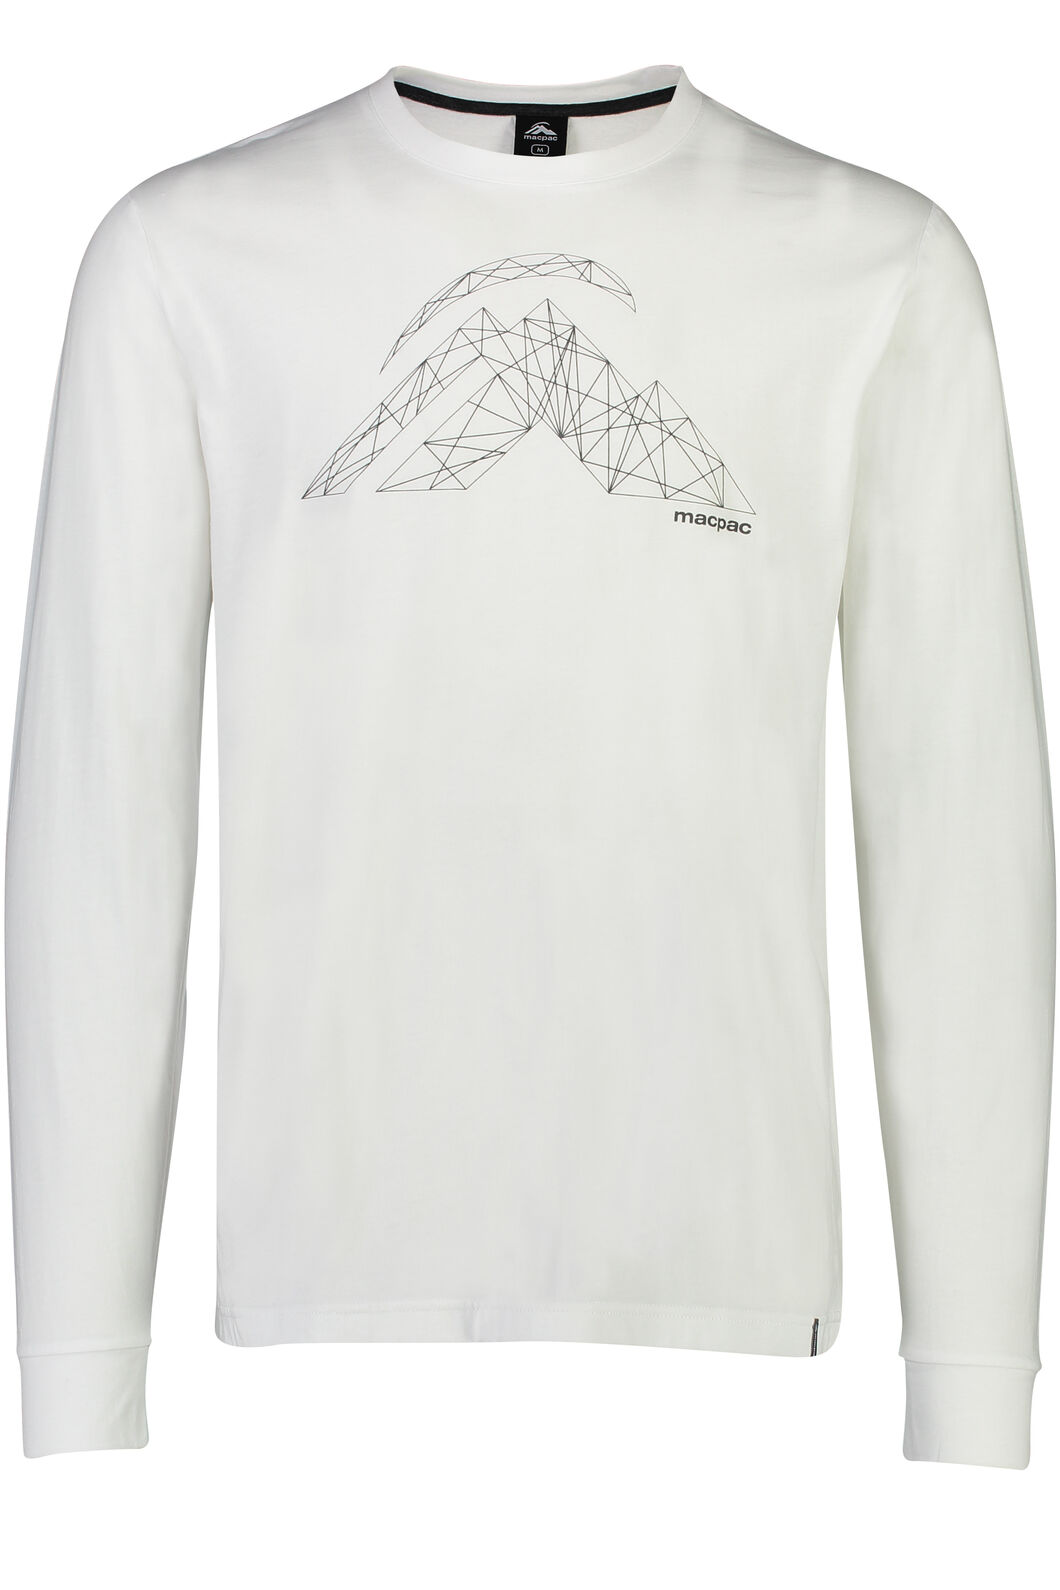 Macpac String Logo Long Sleeve Tee - Men's, White, hi-res